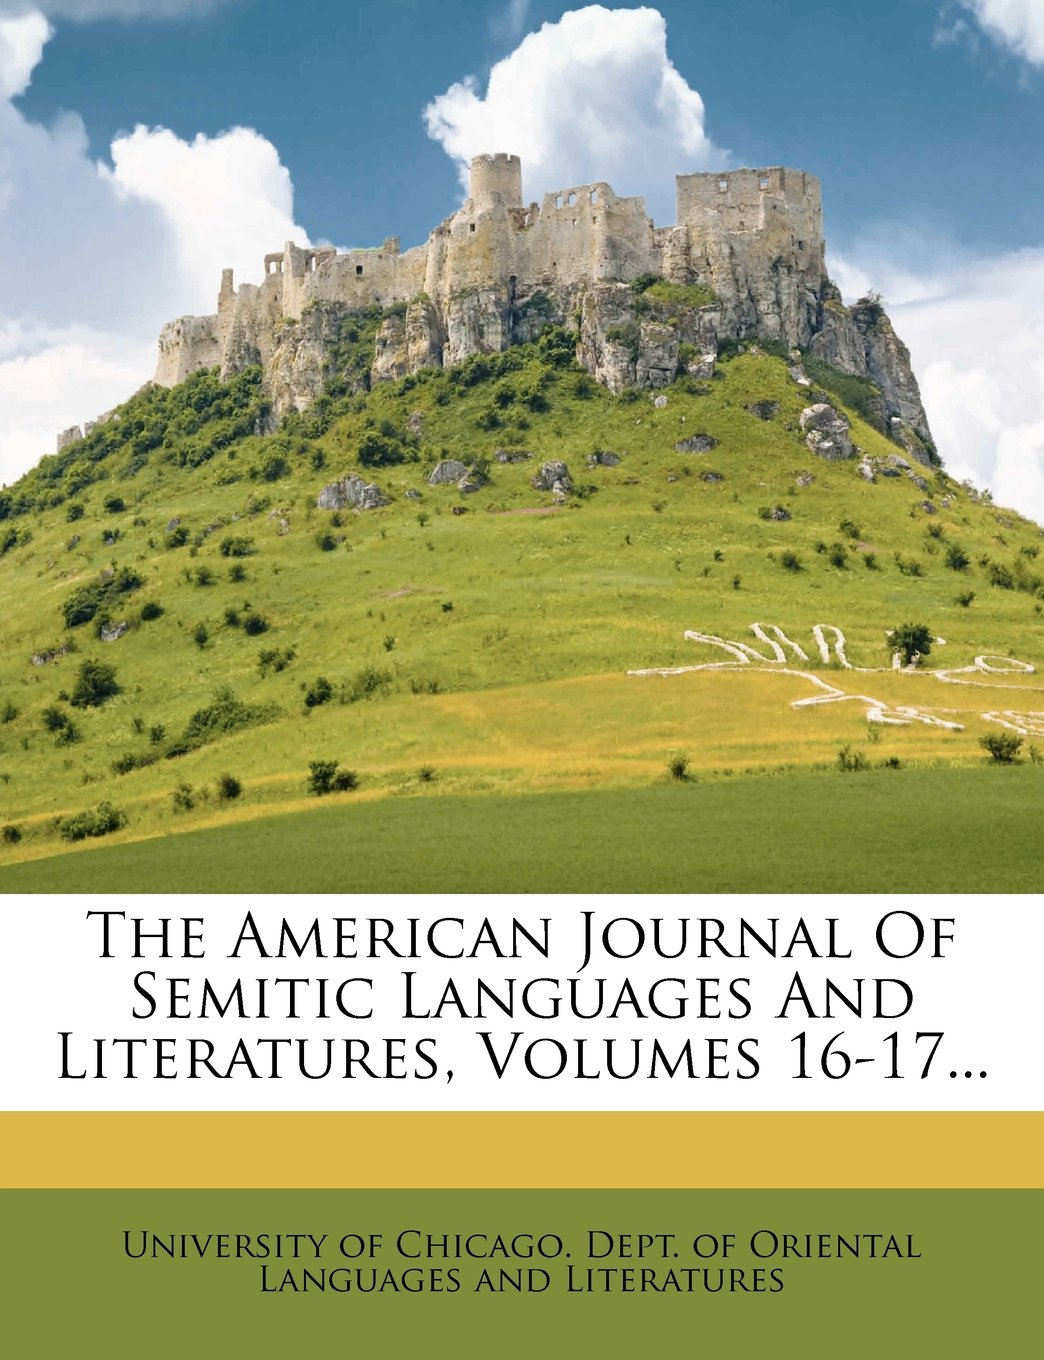 The American Journal Of Semitic Languages And Literatures, Volumes 16-17... PDF